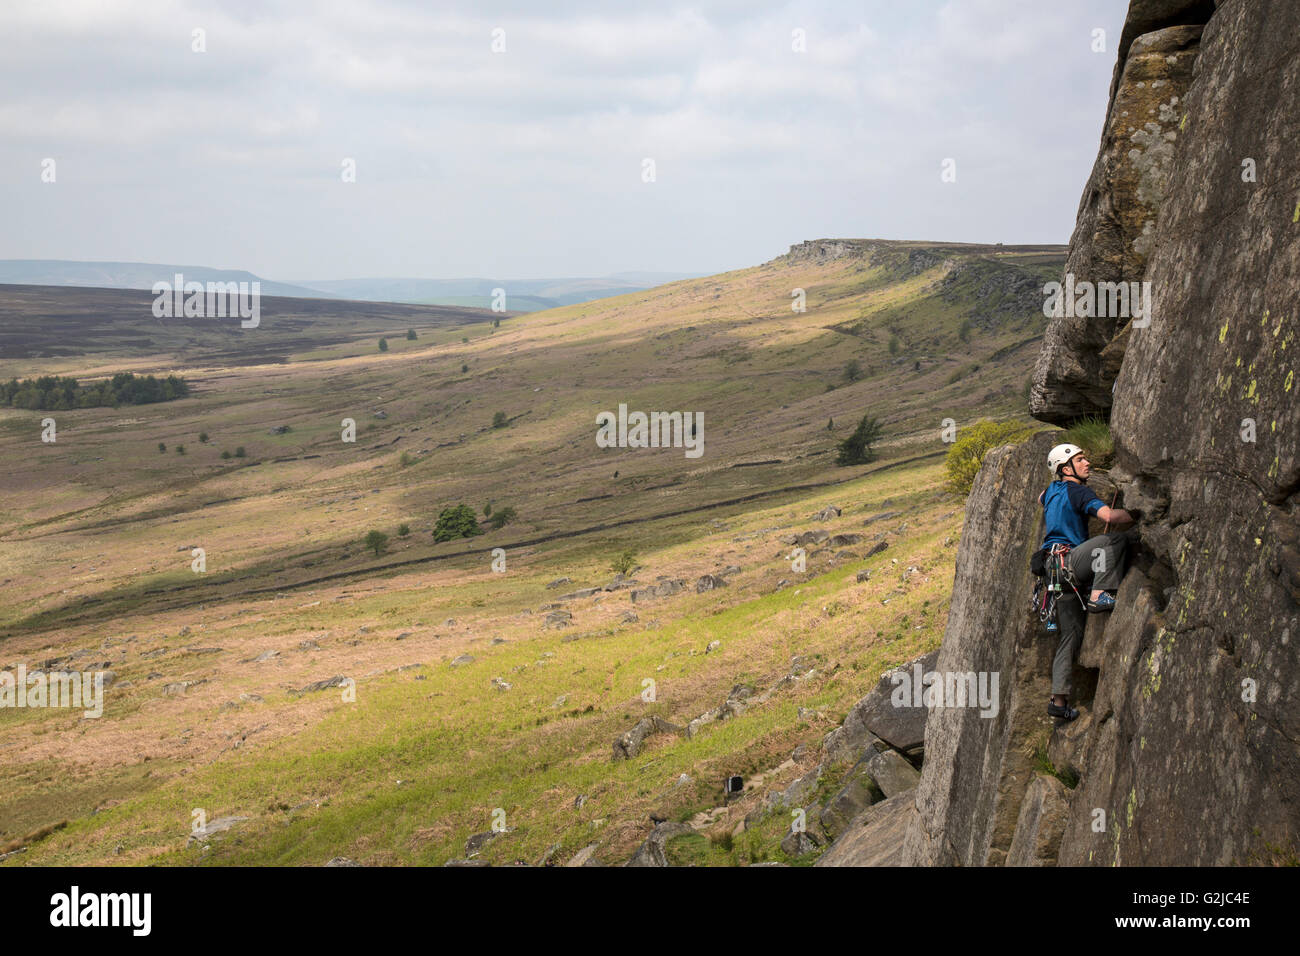 Climber on cliffs of Stanage Plantation in the Peak District, Derbyshire, England. - Stock Image